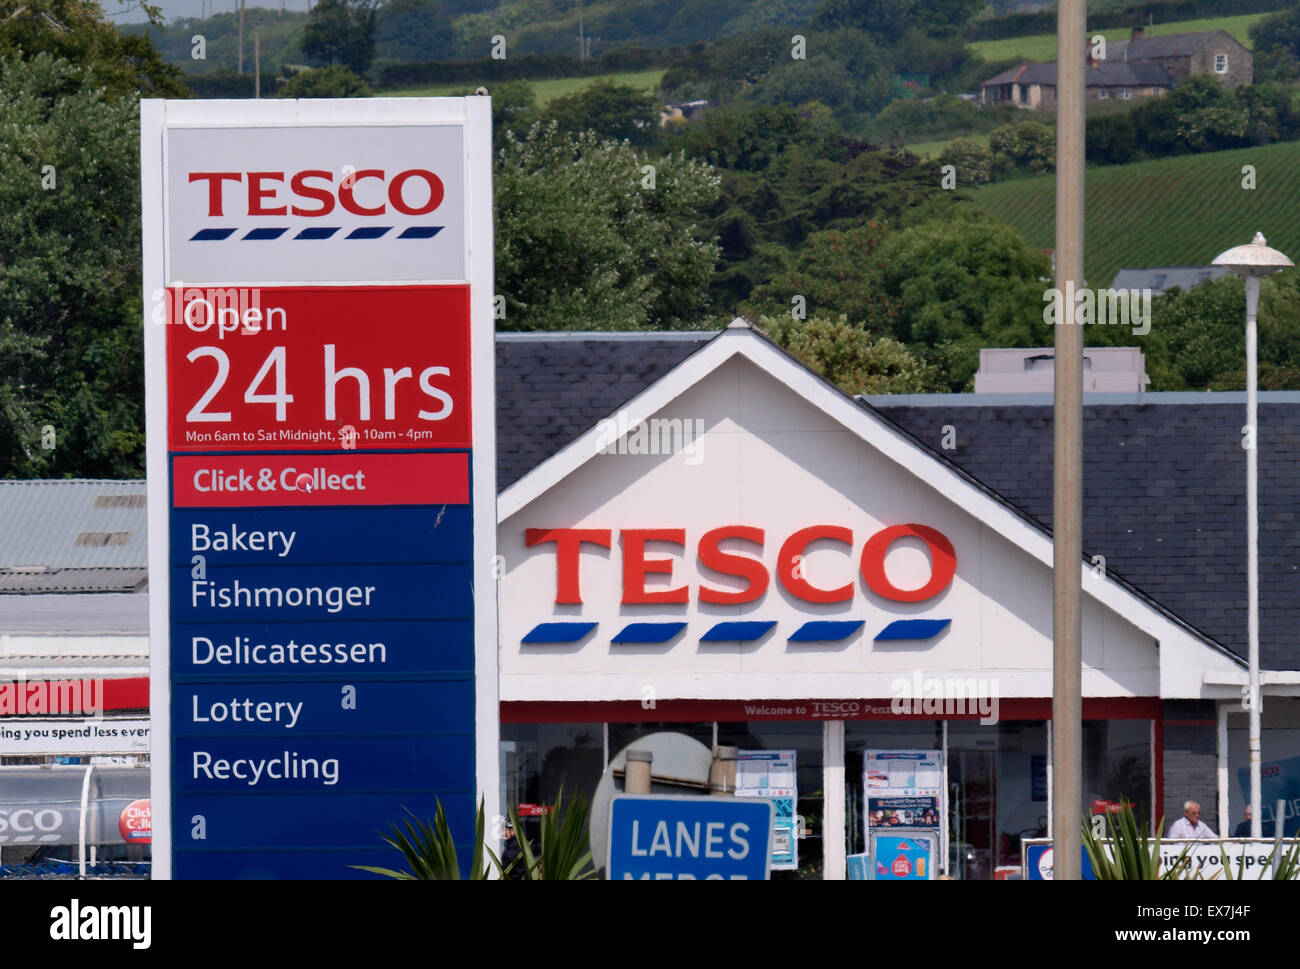 Tesco Burnt Tree Island Dudley Opening Times